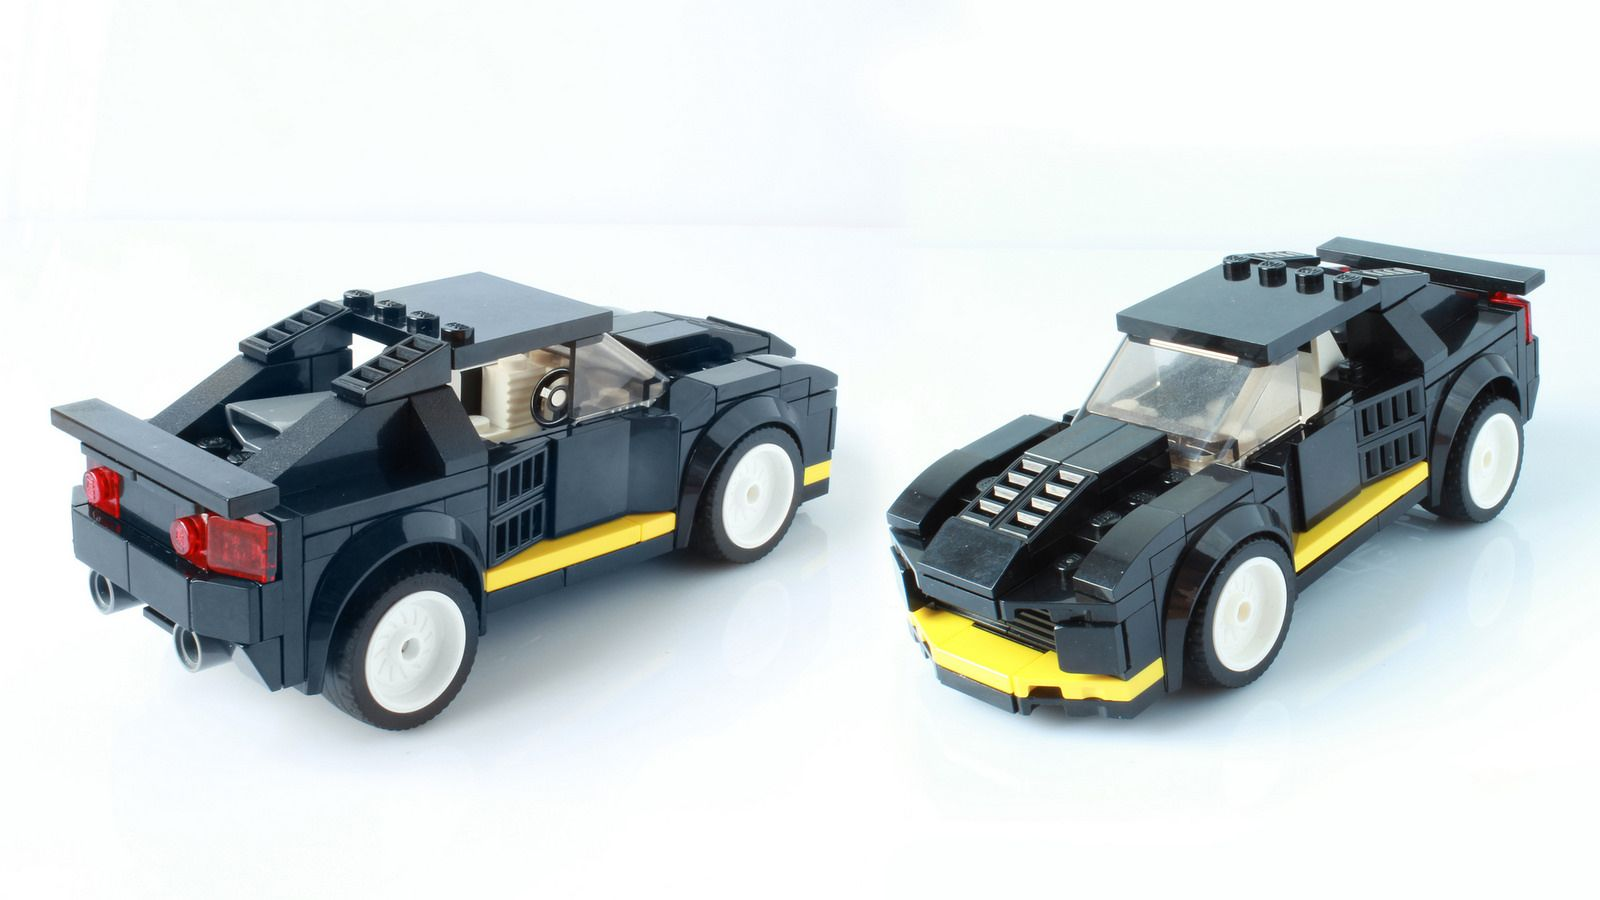 Lego 8880 As A Speed Champions Car With Instructions Lego